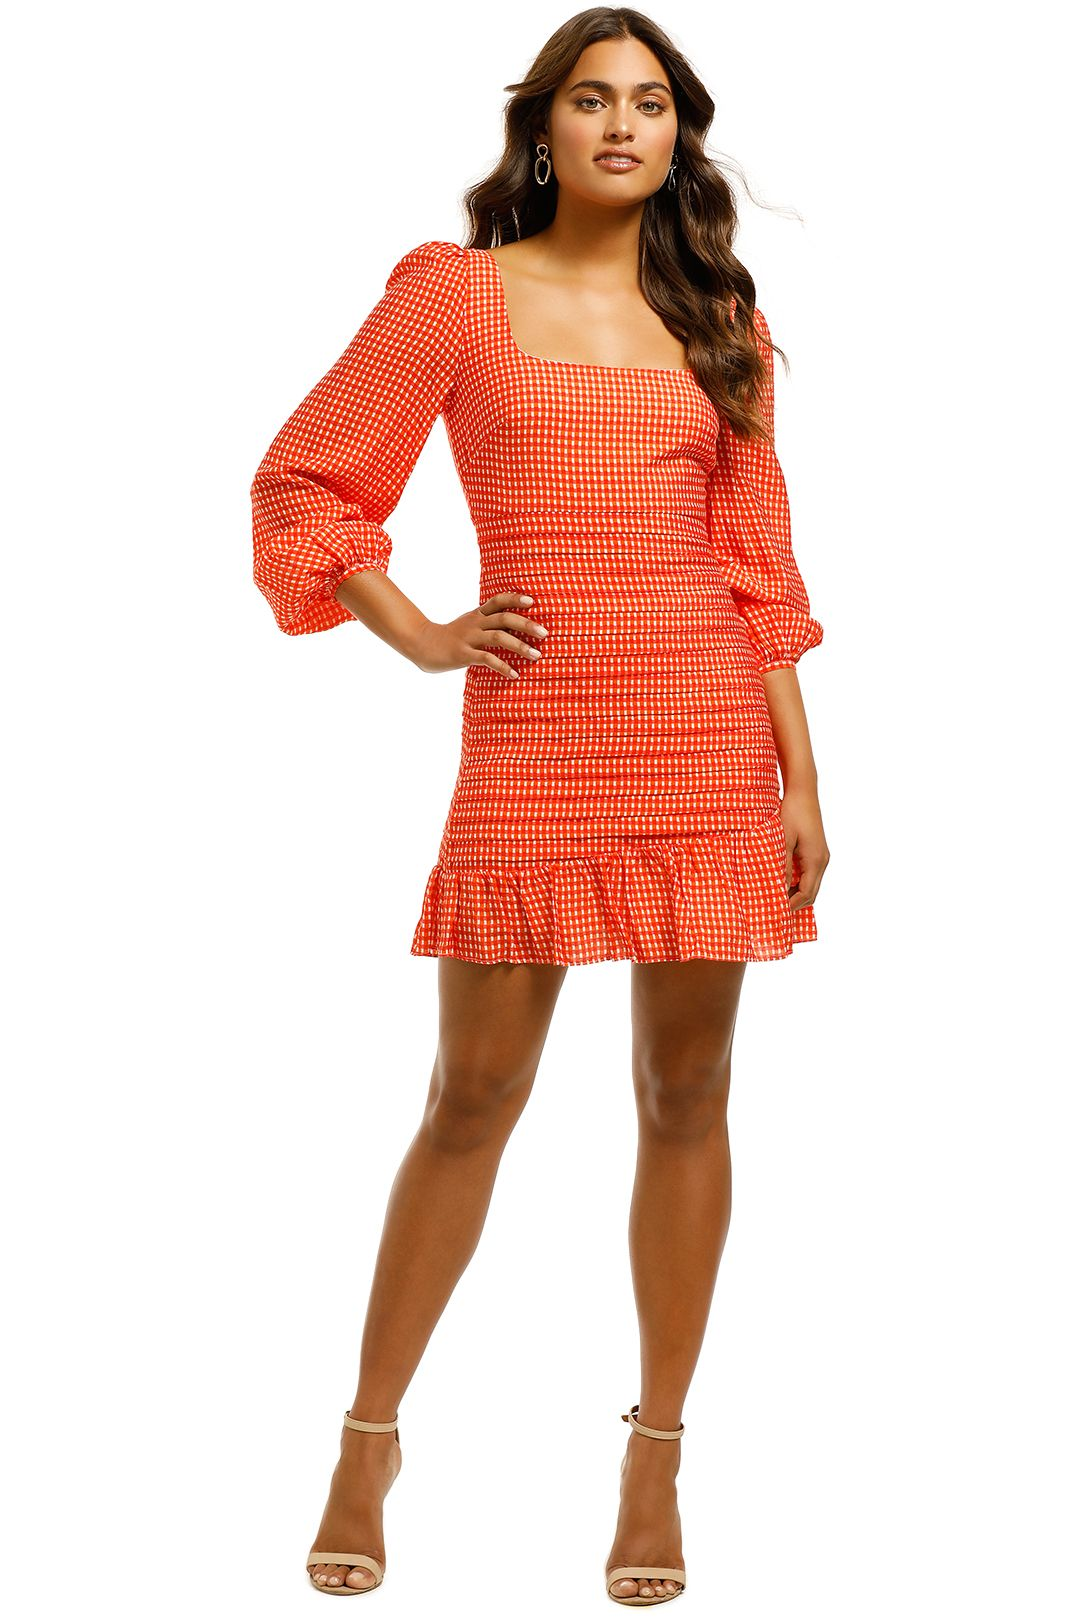 Talulah-Honey Hue LS Mini Dress-Orange-Front